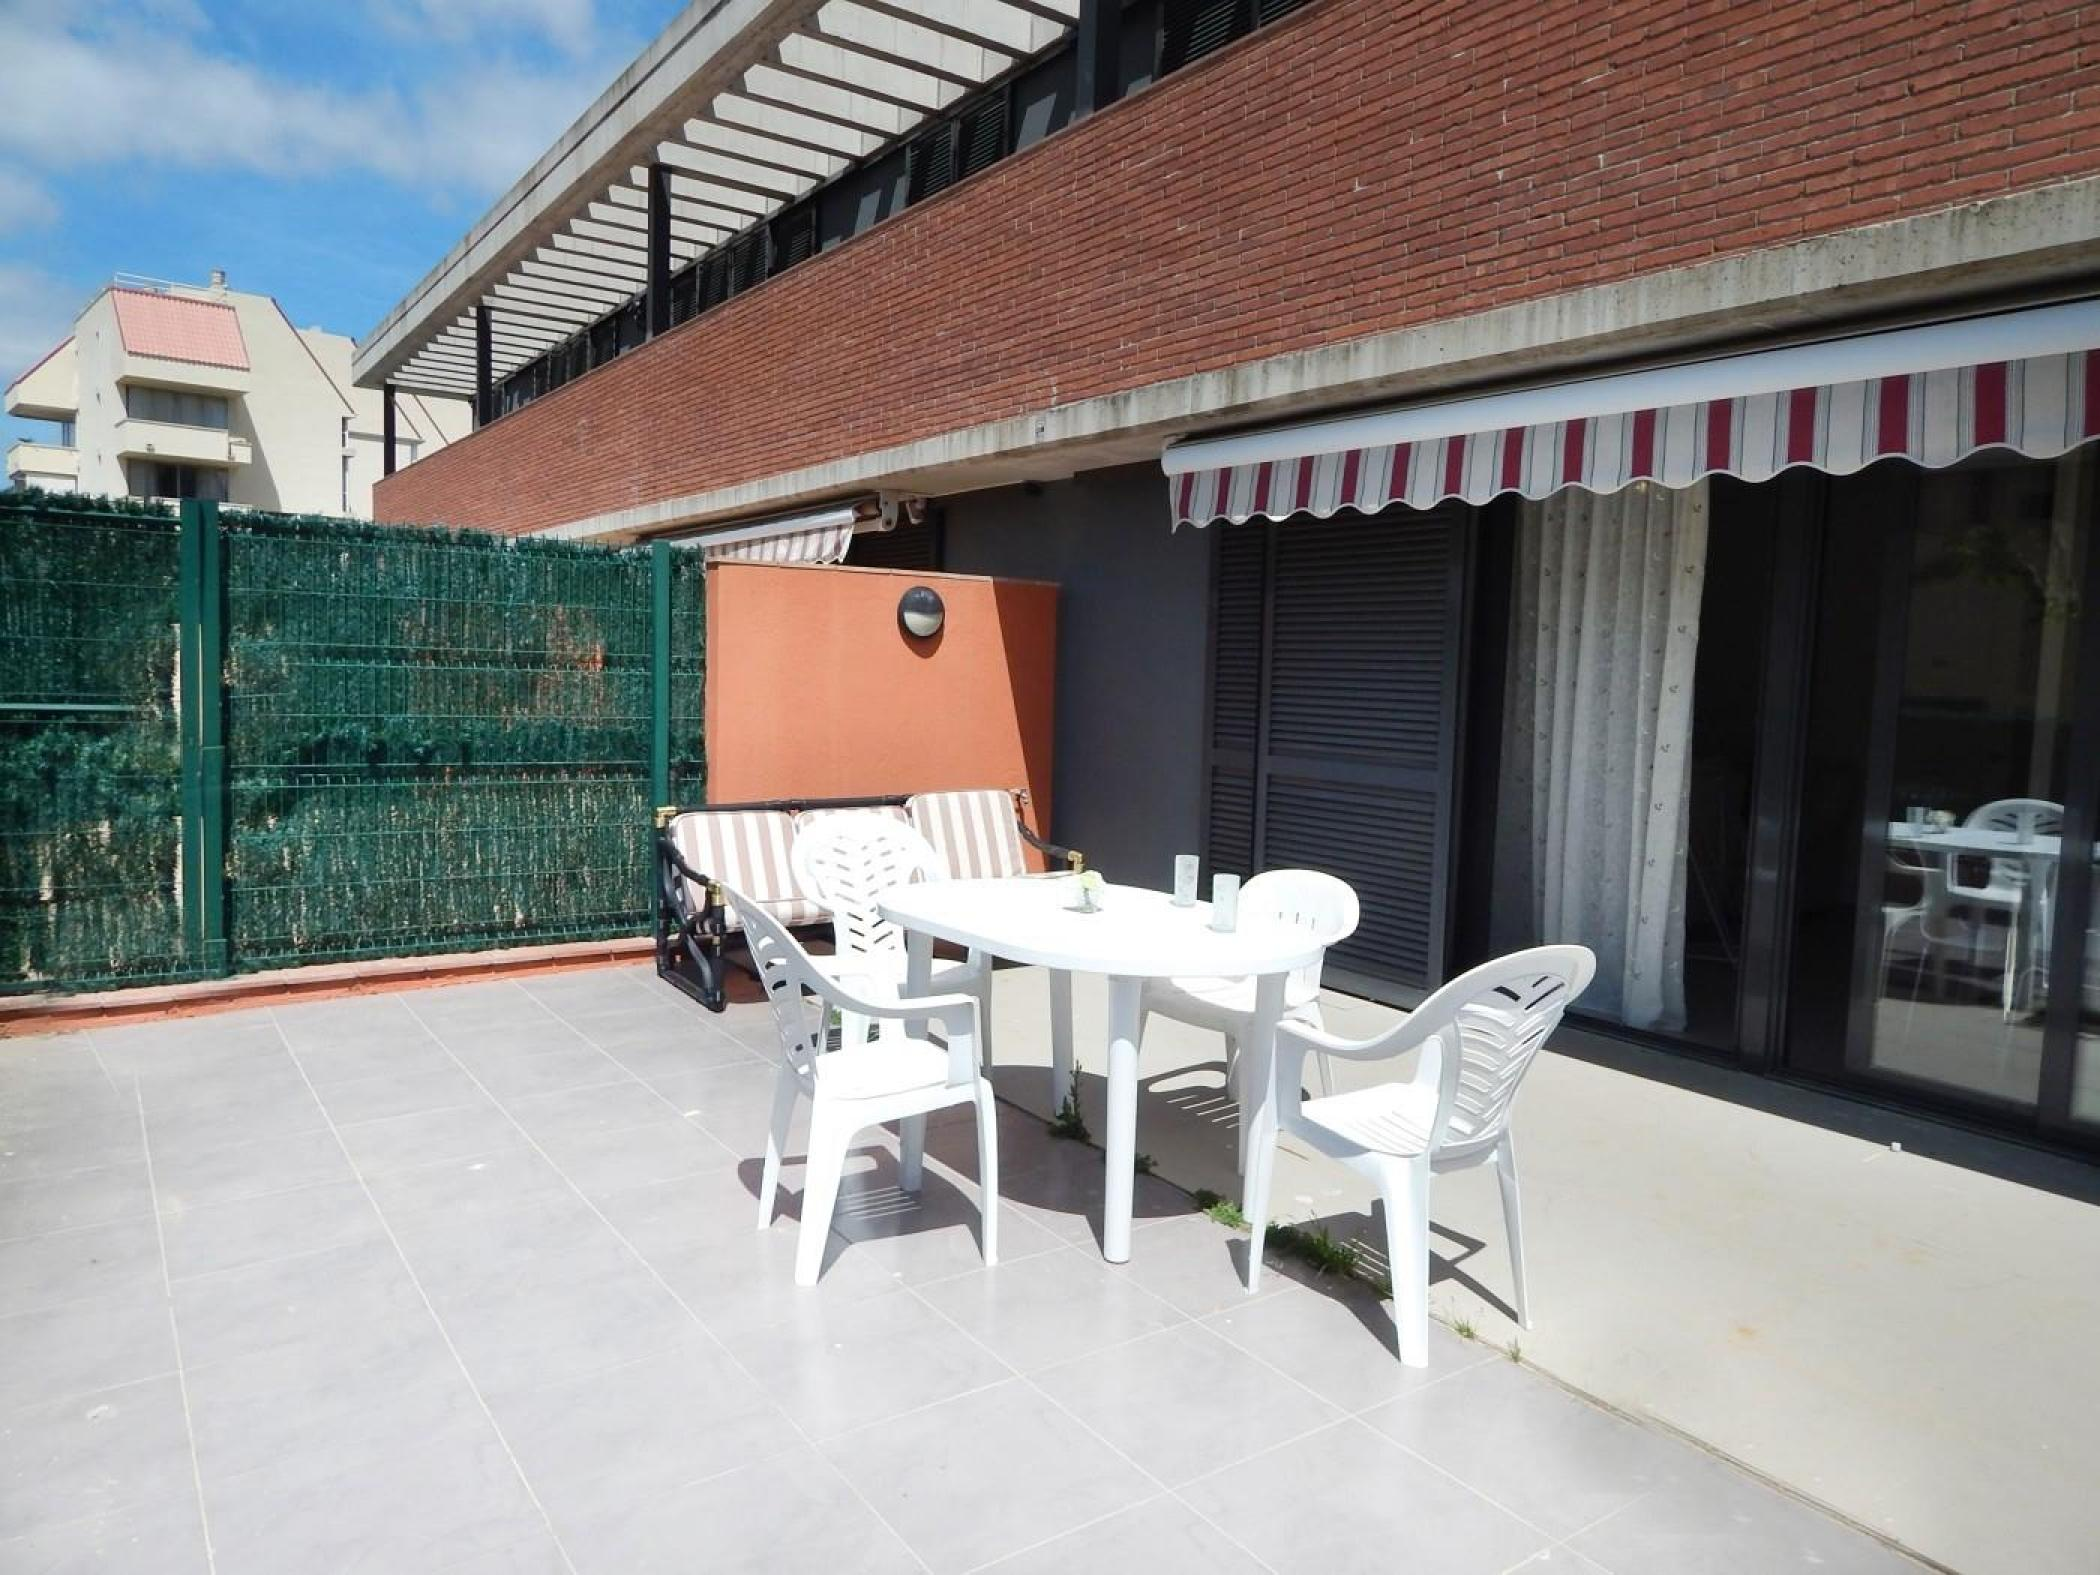 Rent Apartment in Platja d'Aro - Ground floor in front of the sea Ridaura BX4 - 15